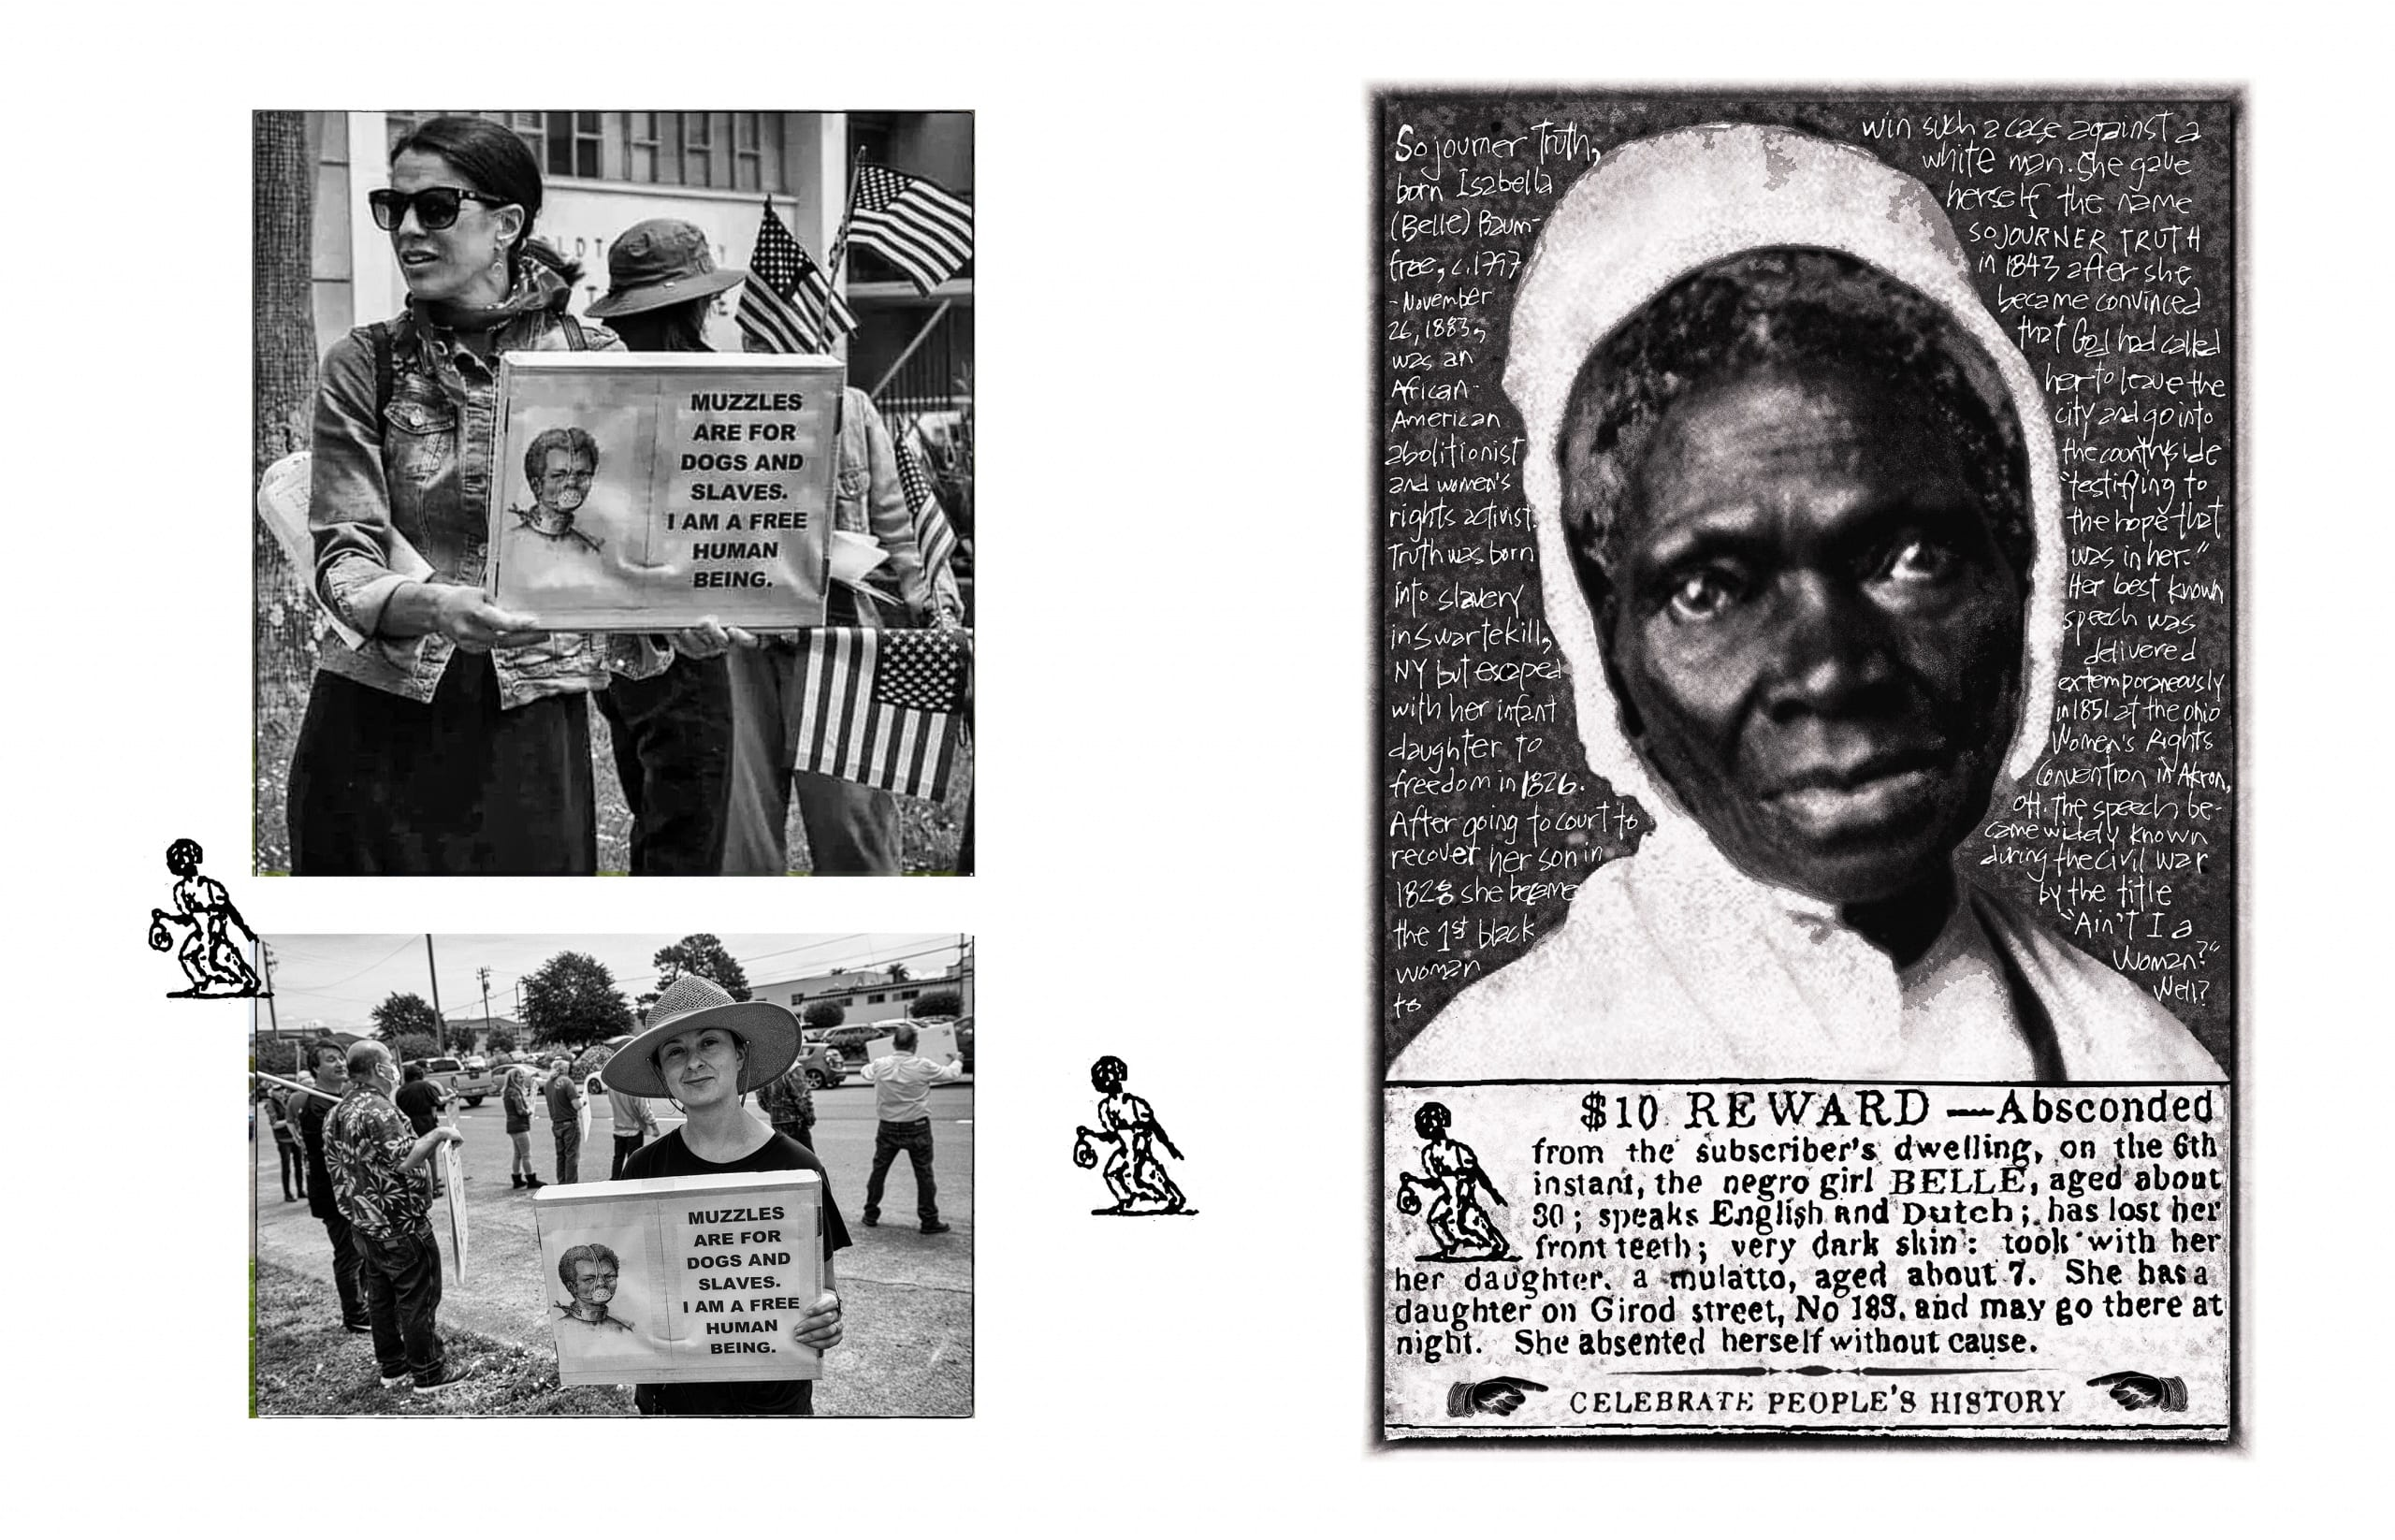 """To left, two black and white photographs show two different white women protesting stay-at-home orders, both of whom hold computer printouts of an 1839 illustration of an enslaved man forced to wear a face mask and neck collar restraints. The first woman's sign reads, """"Muzzles are for dogs and slaves. I am a free human being""""; she is surrounded by multiple American flags waved by other protestestors. The photos are flanked by two small reproductions of 18th-century newspaper icons of self-liberated persons. To right, a reproduction of a historical portrait photograph of Sojourner Truth; a short, handwritten biographical text appears over the gray background surrounding Truth's image. The portrait rests on top of a newspaper advertisement for a reward in helping a slave owner locate a self-liberated woman and her young seven-year old daughter"""